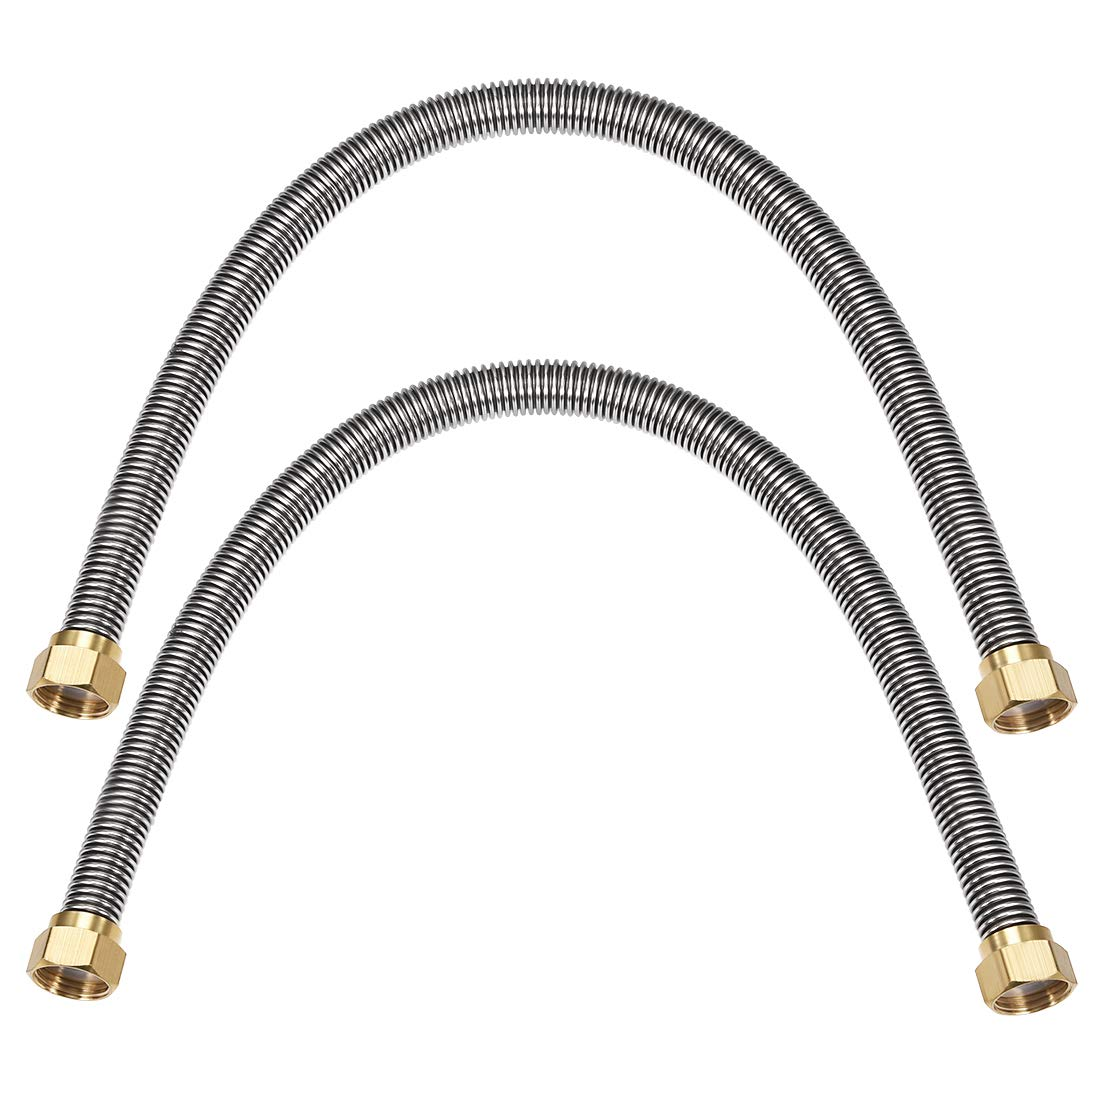 uxcell Corrugated Stainless Steel Flexible Water Line 23.6inch Length G1/2 Female Threaded Connector with Washer, 2pcs by uxcell (Image #1)